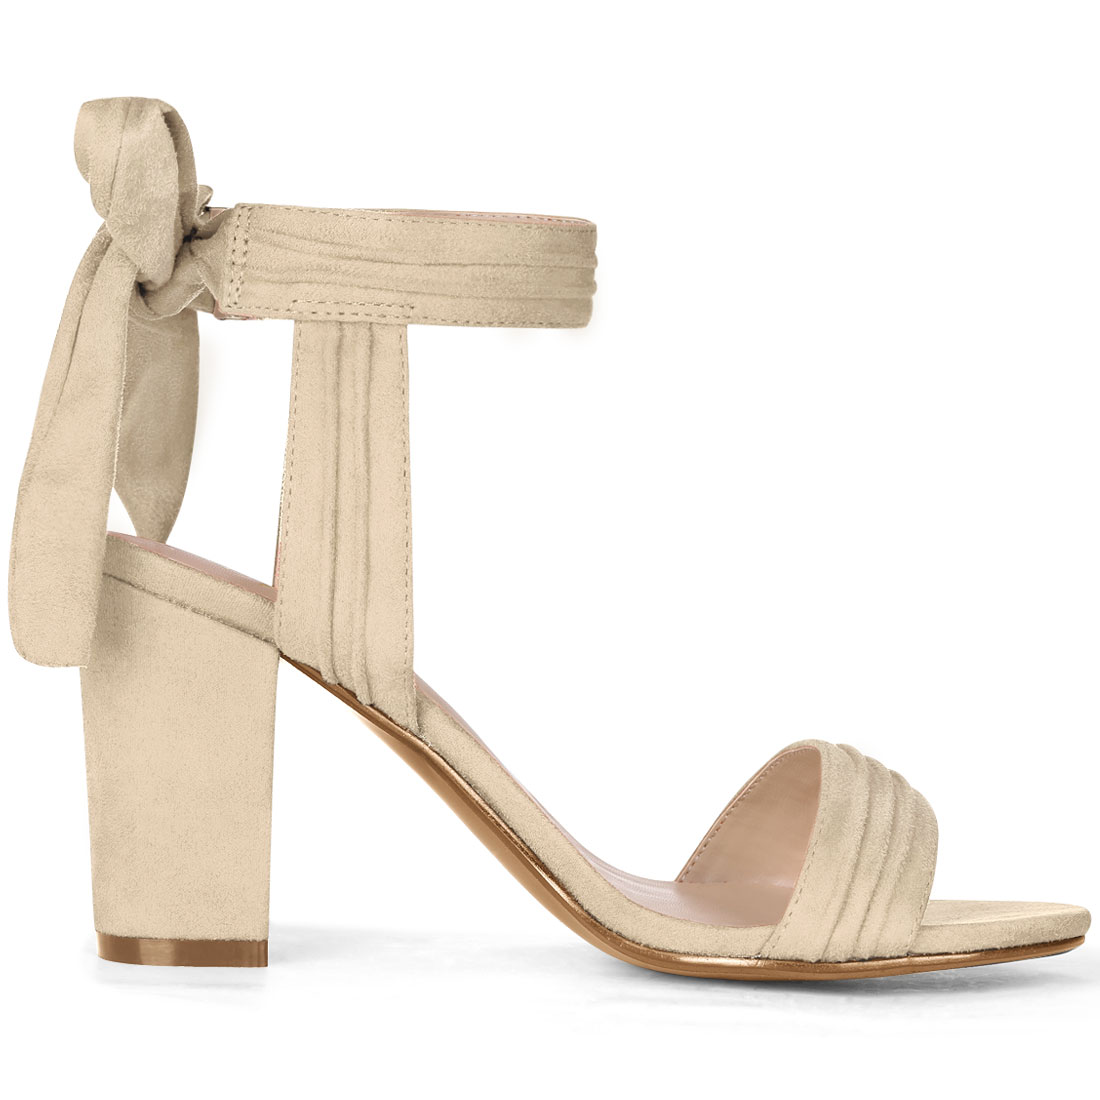 Unique Bargains Women's Ankle Tie Open Toe Block Heel Sandals Beige (Size 9.5) - image 3 of 7